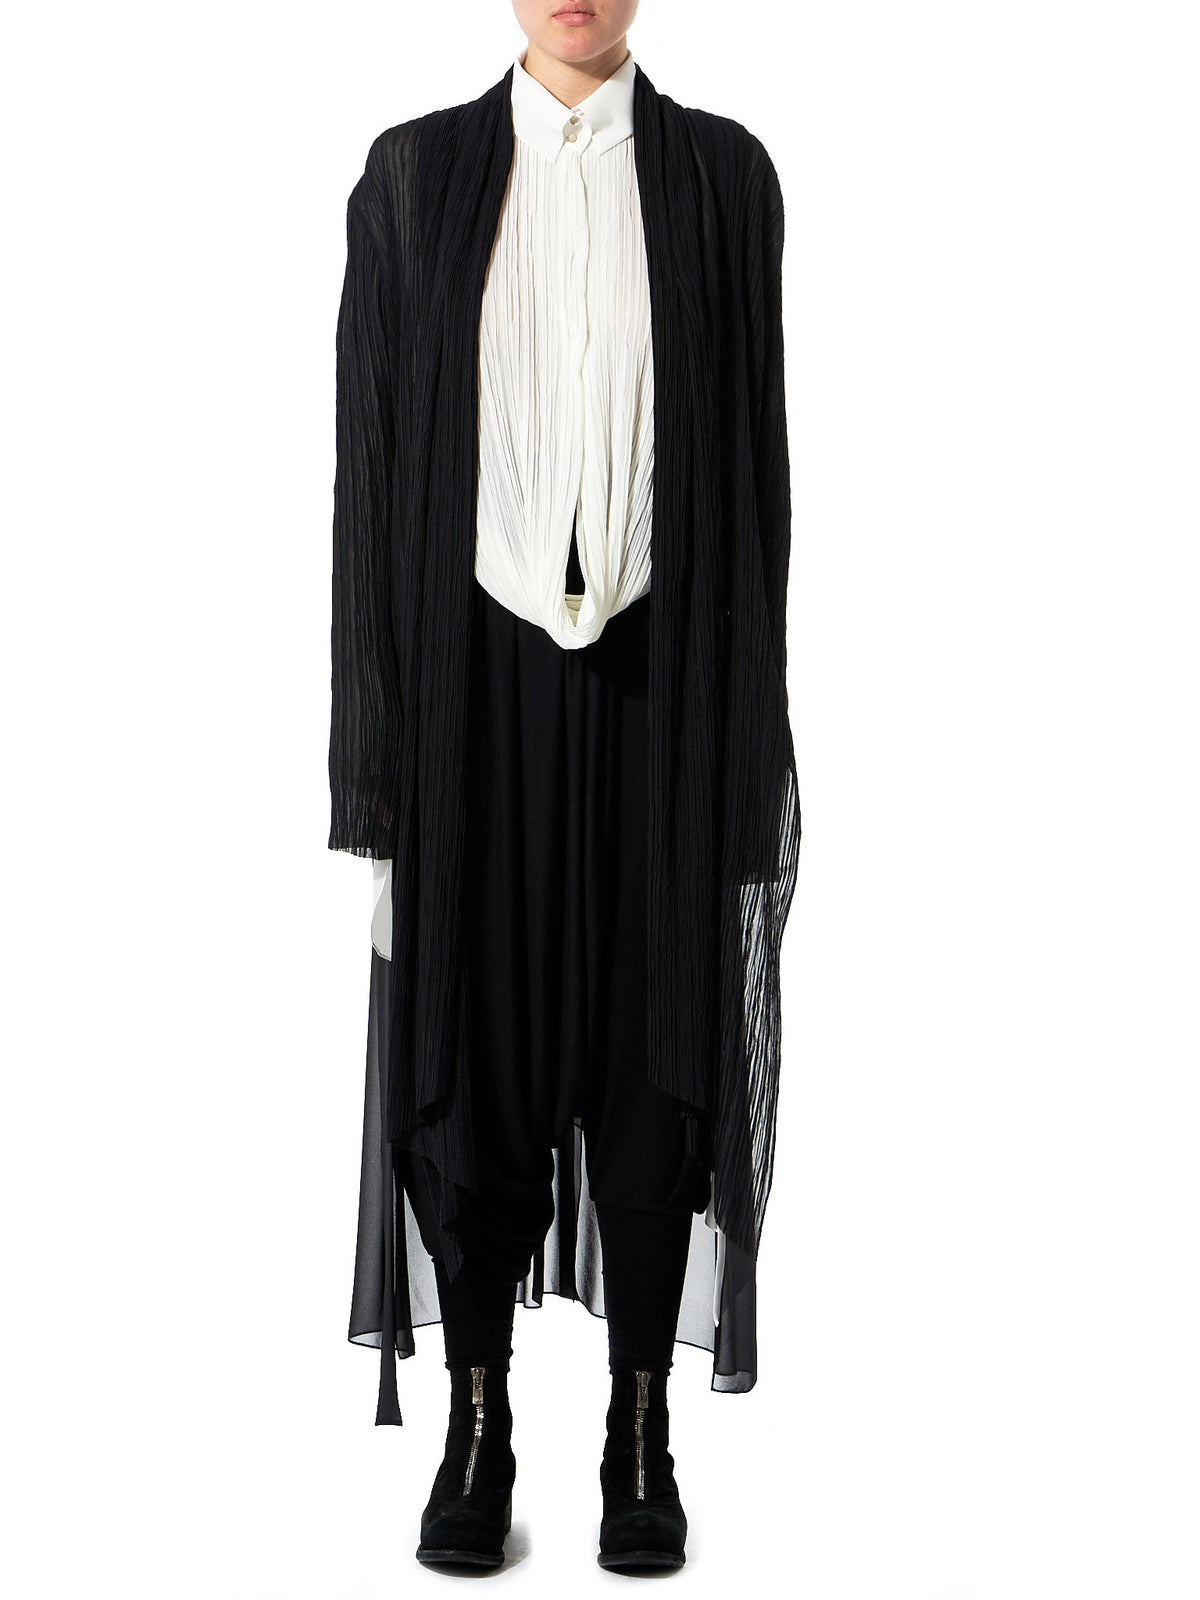 Draped Shawl Cardigan (GLS-SL70-BLACK) - H. Lorenzo